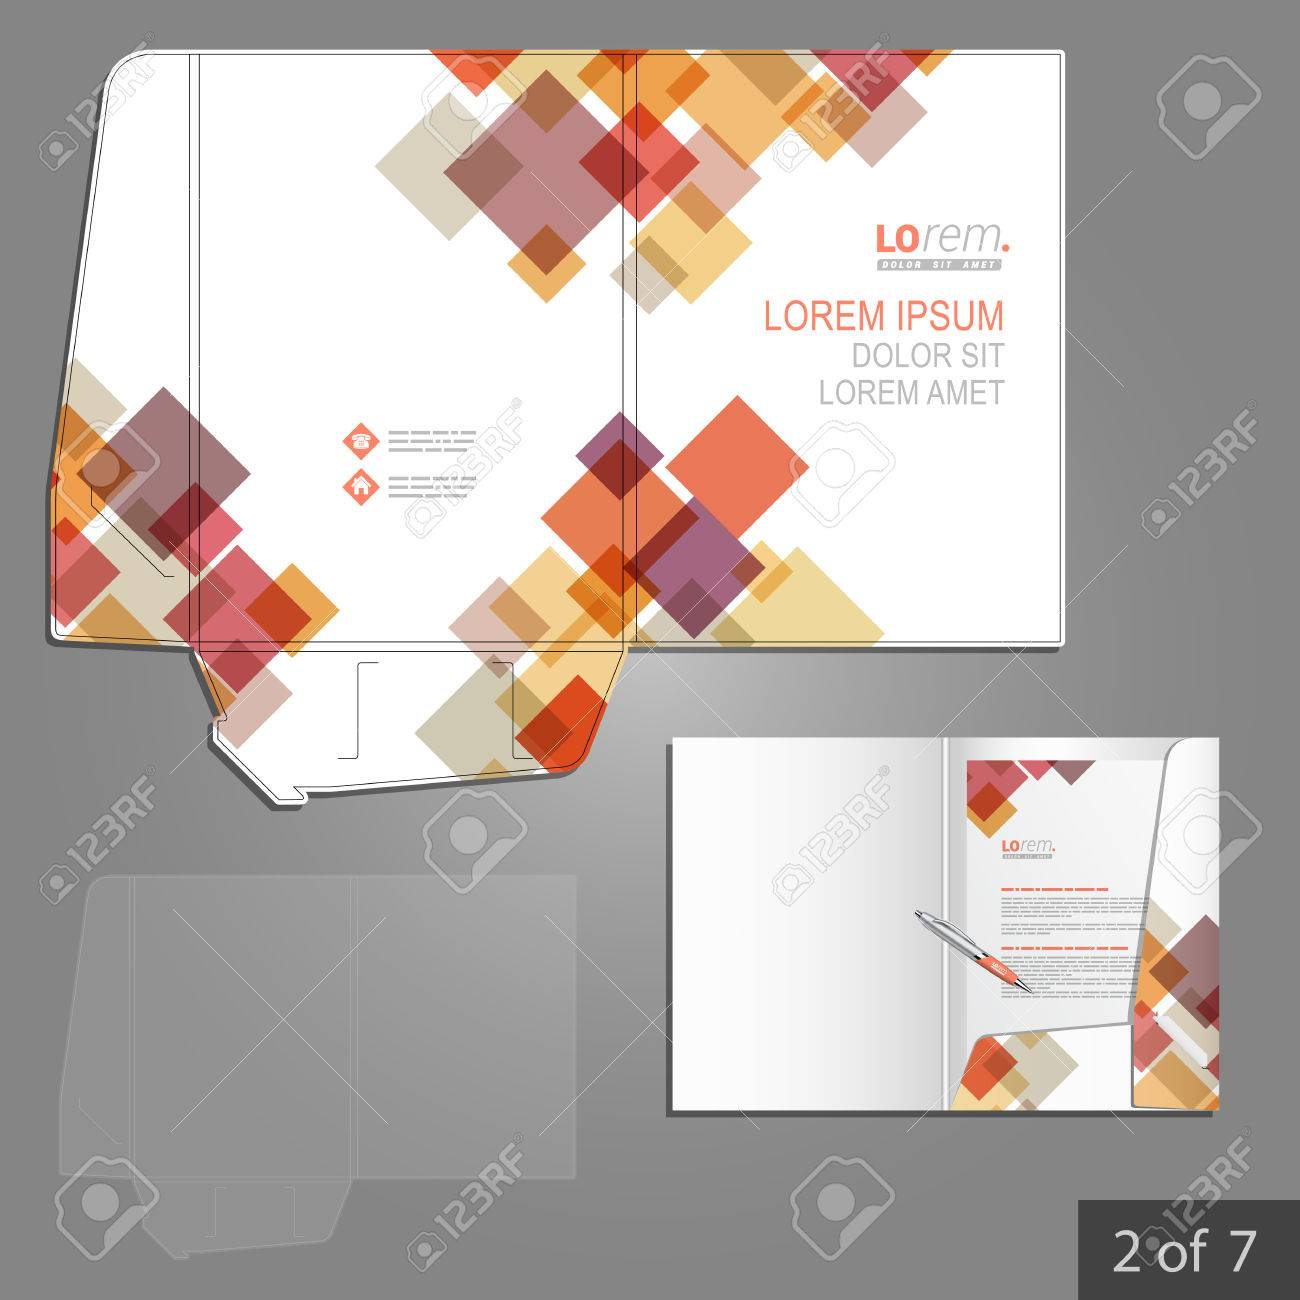 white folder template design for corporate identity with red